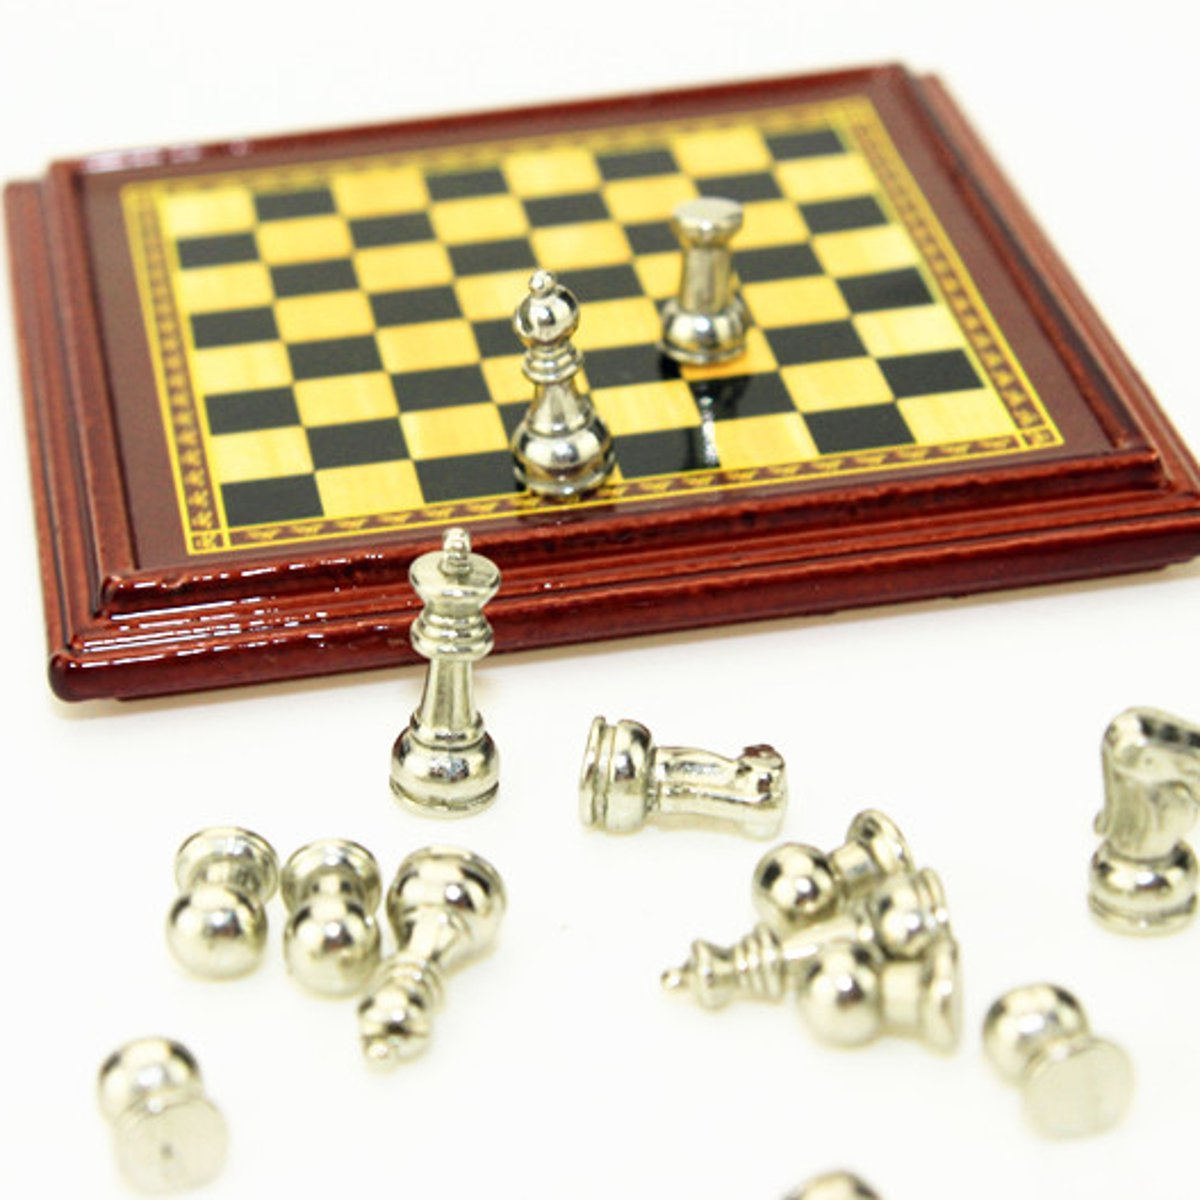 1/6 scale chess set DC23469A2623169ACE31D29A26239ED2CD0374CB33D253CF23C6D26B9D23739C23CC2356399CCC5316F5C9